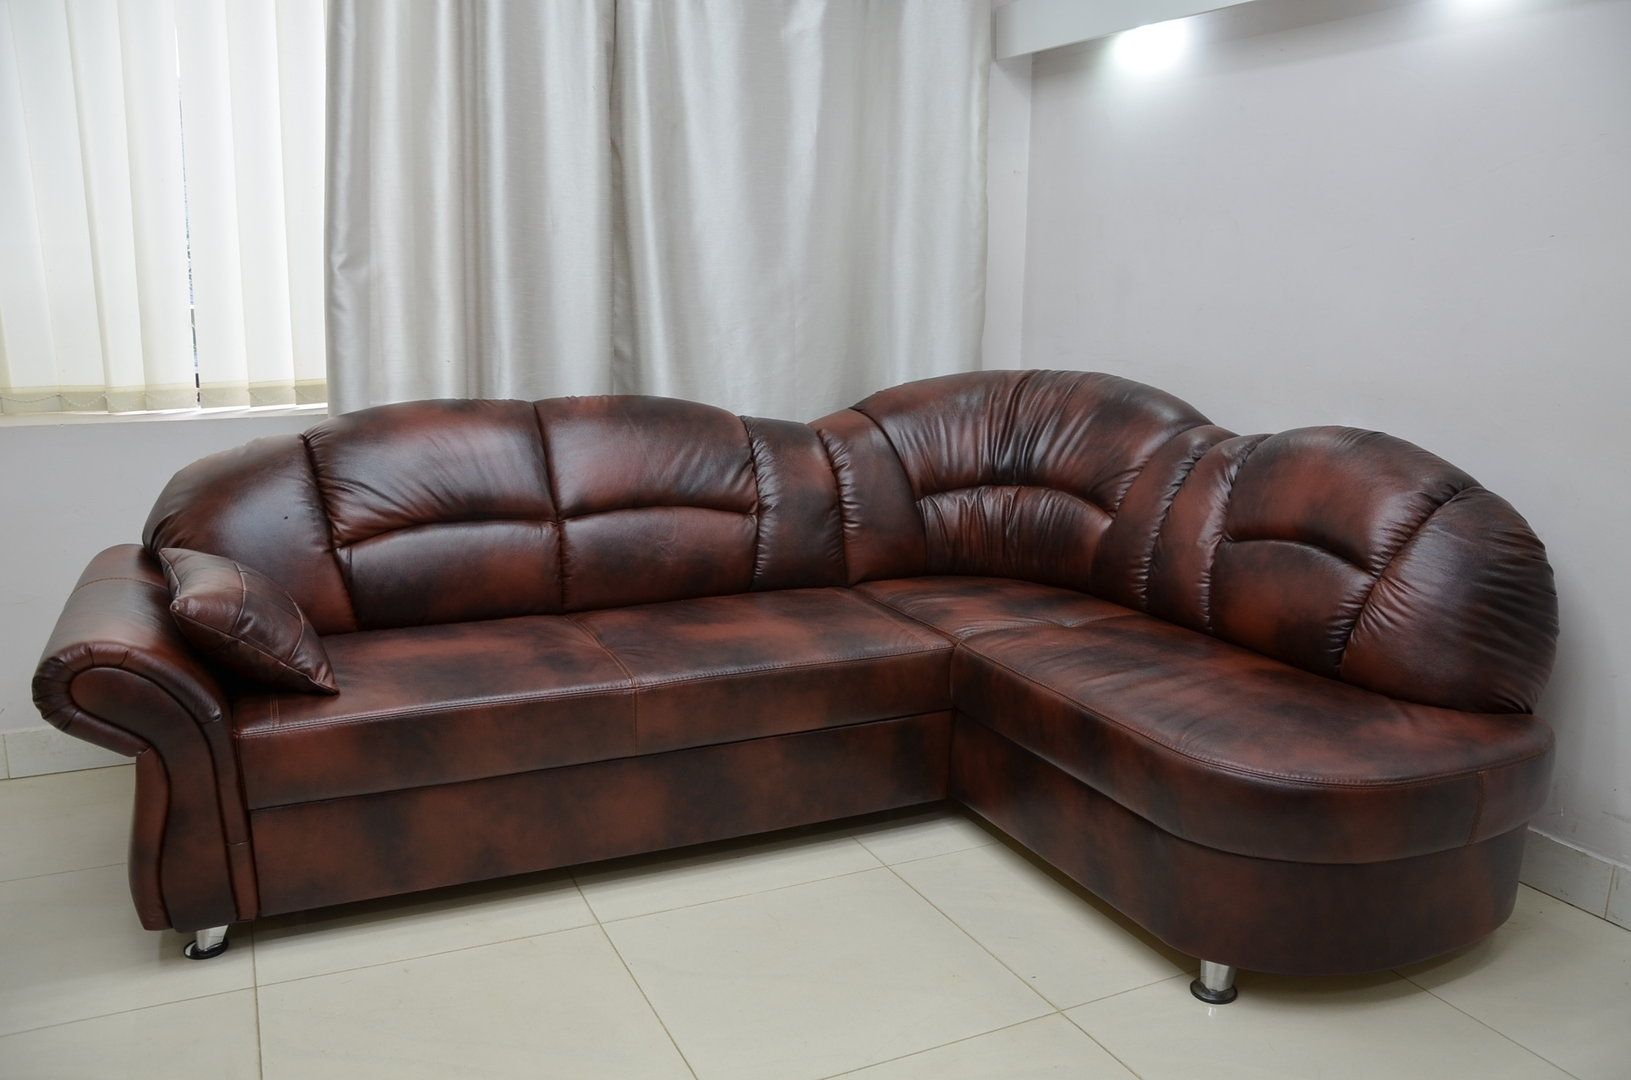 Sofa Manufacturer Uk Baby Blue Slipcover Corner Manufacturers Microfinanceindia Org